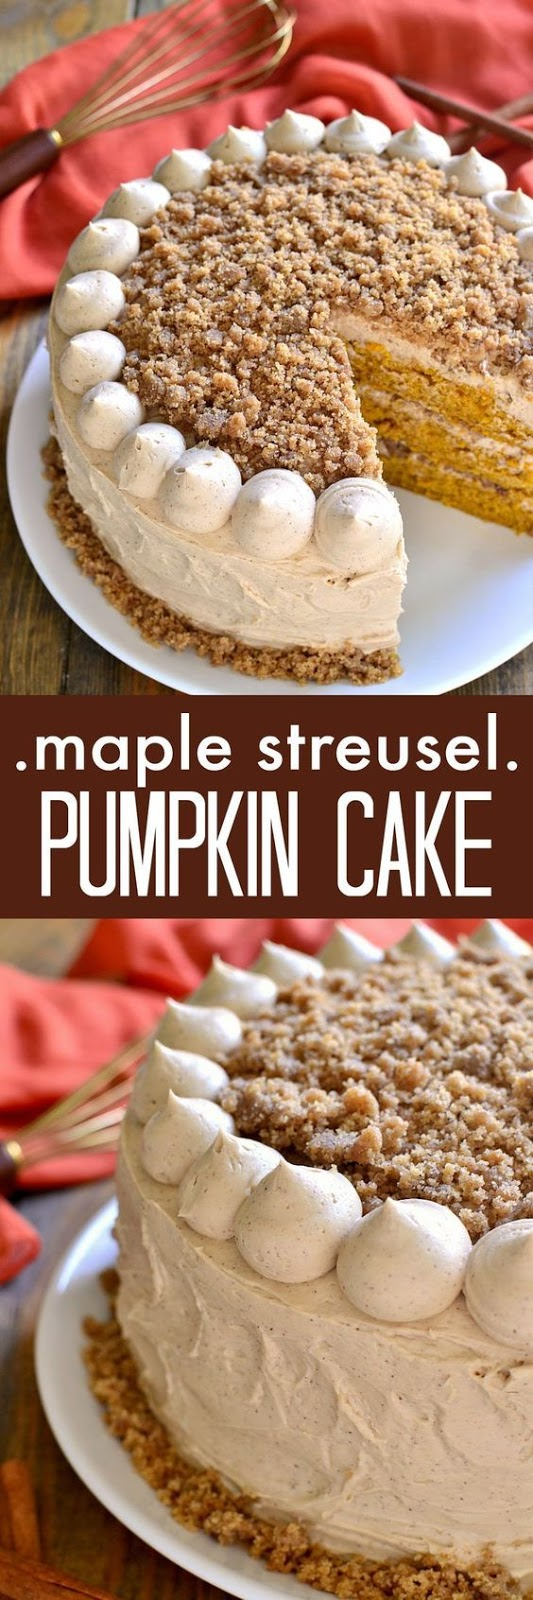 Maple Streusel Pumpkin Cake Recipe